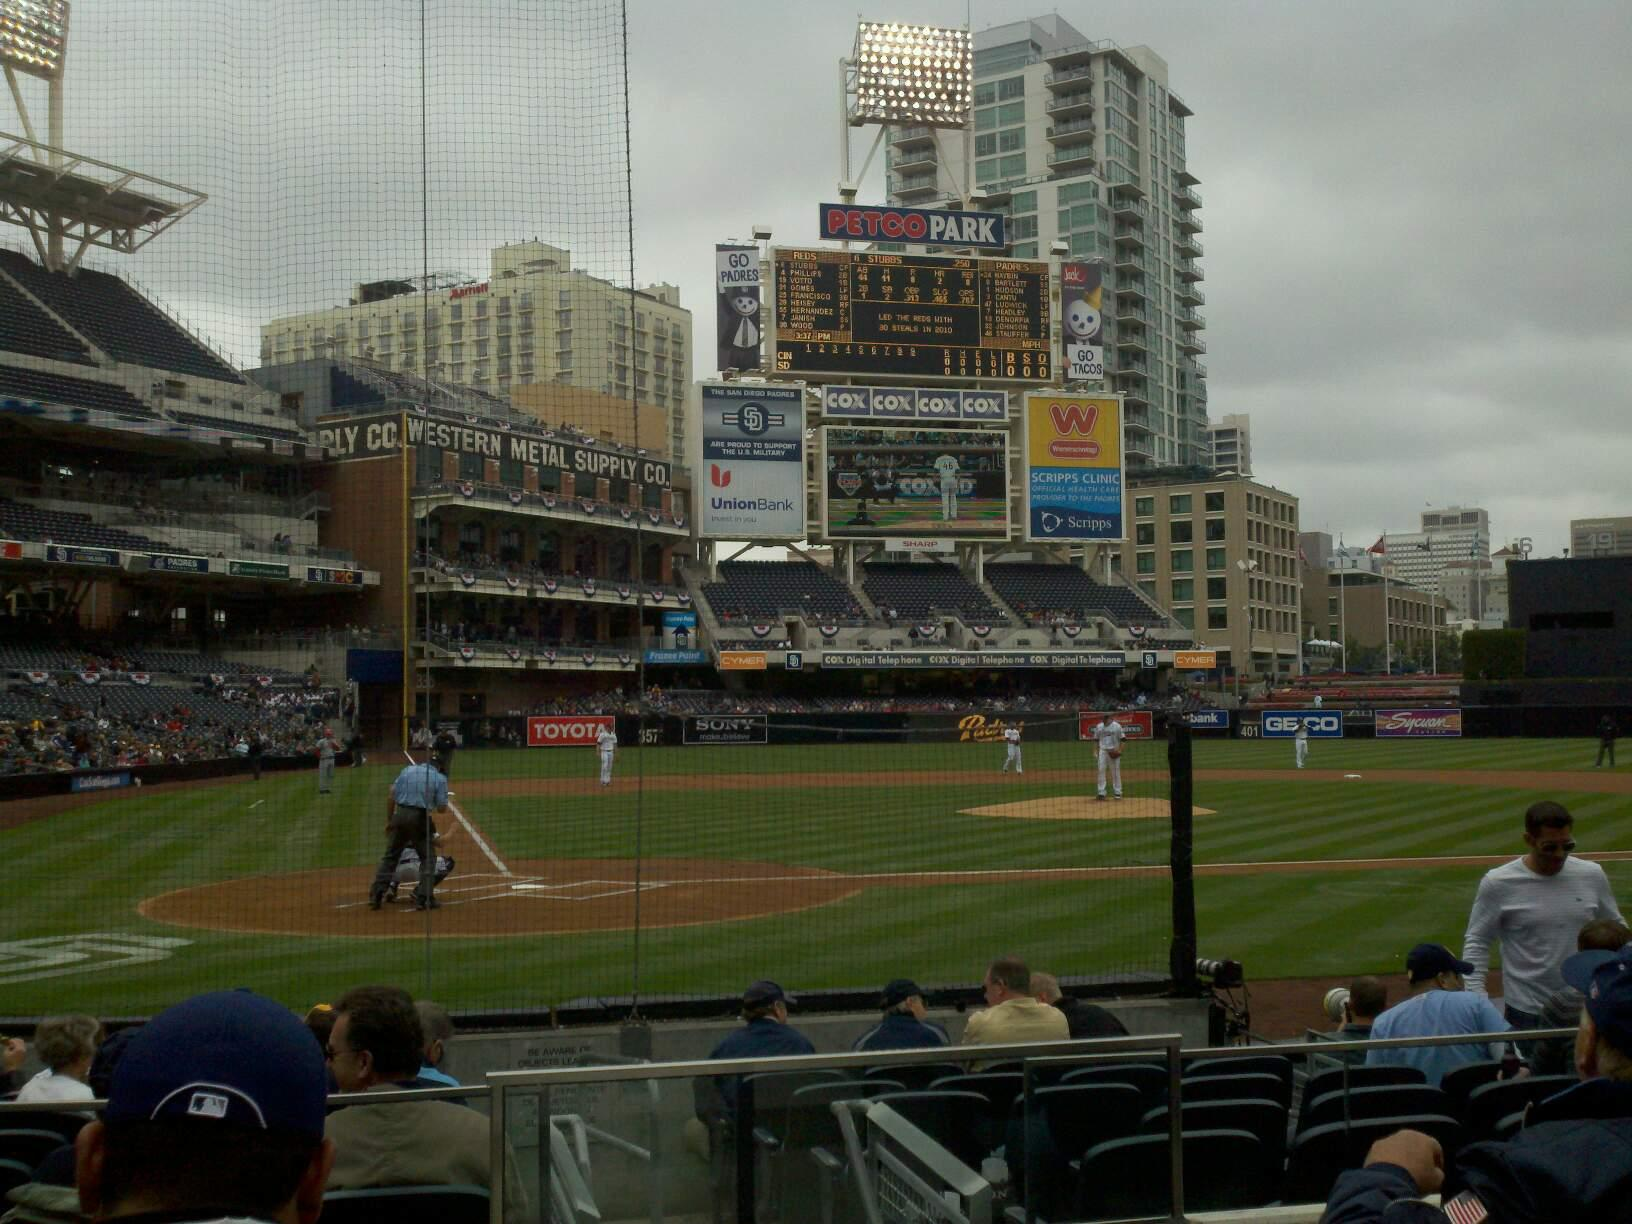 PETCO Park Section 103 Row 11 Seat 11